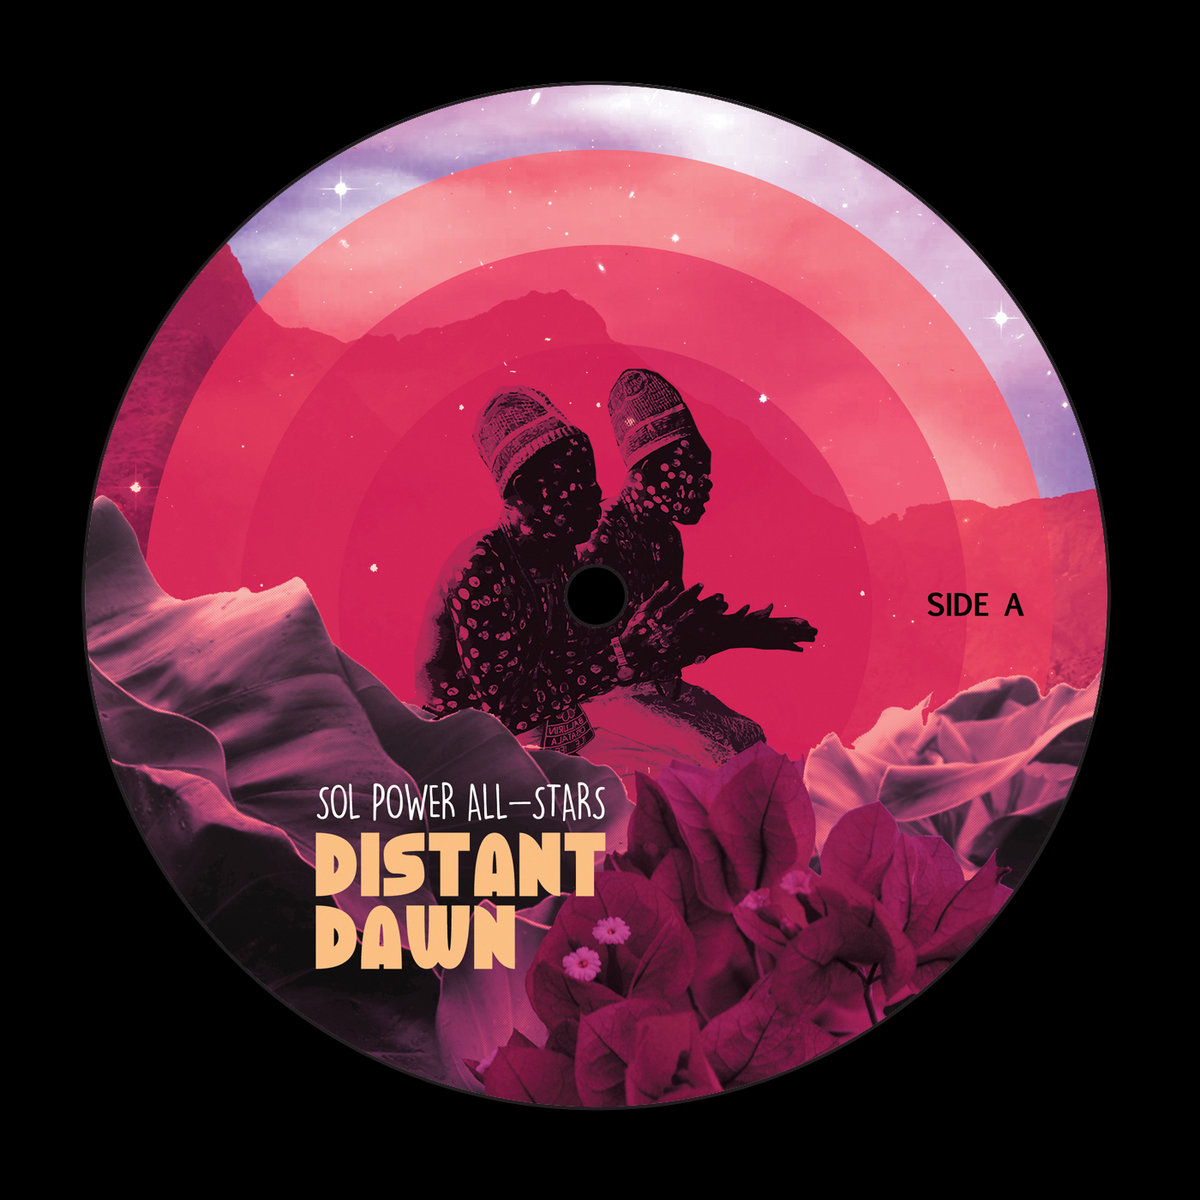 The Sol Power All-Stars Distant Dawn